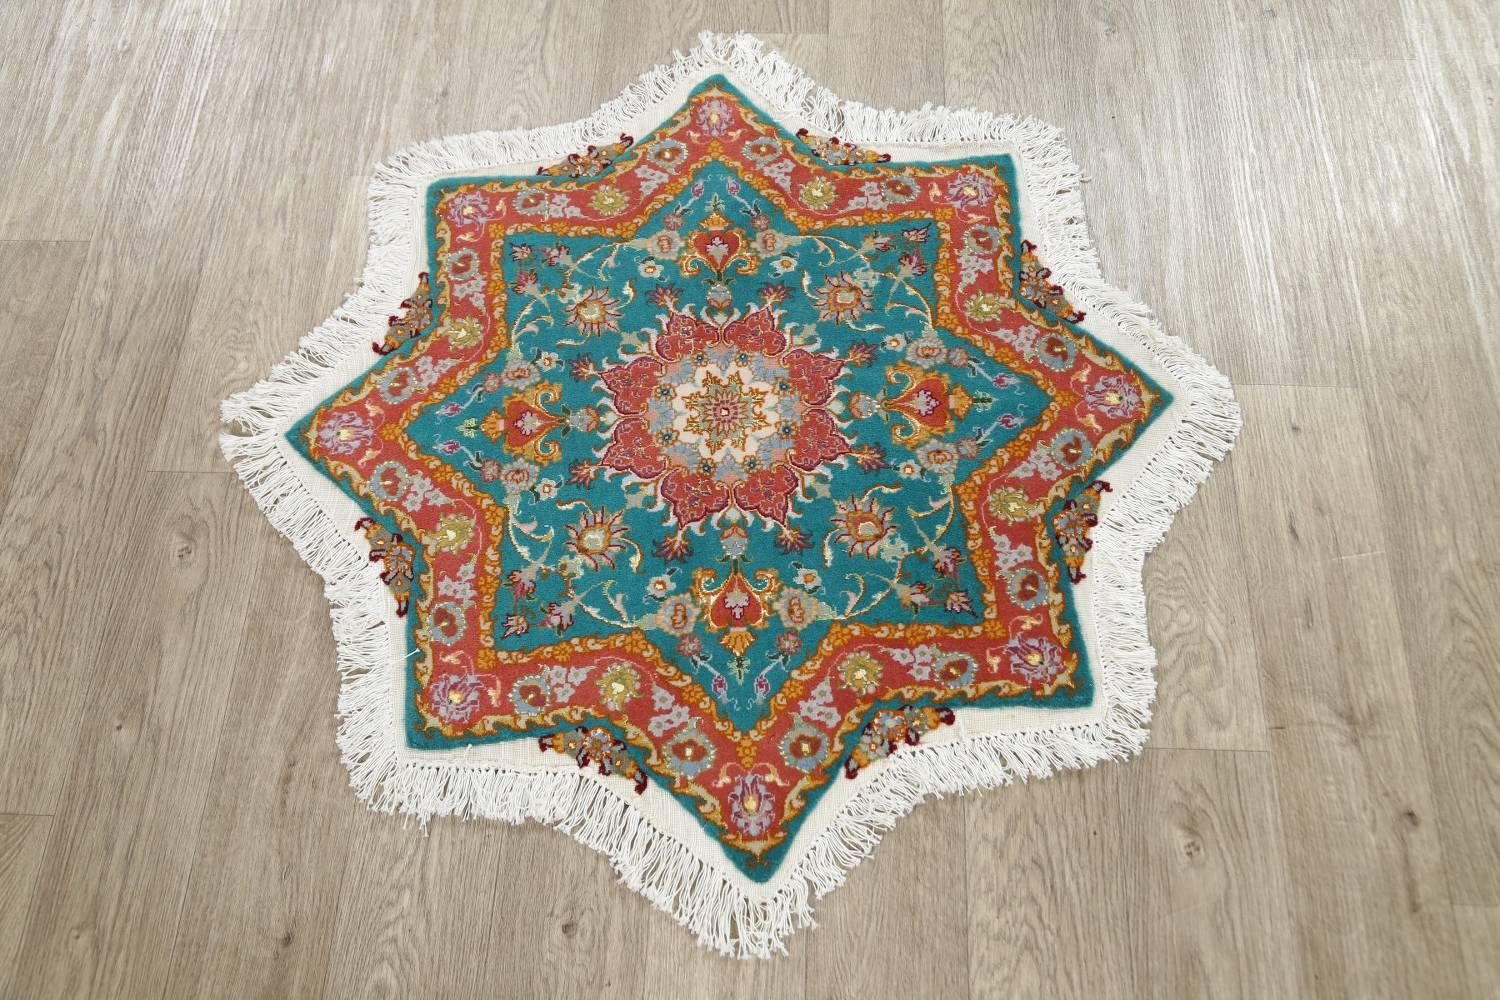 Floral Teal Tabriz Persian Hand-Knotted 3x3 Wool Silk Star Rug image 8